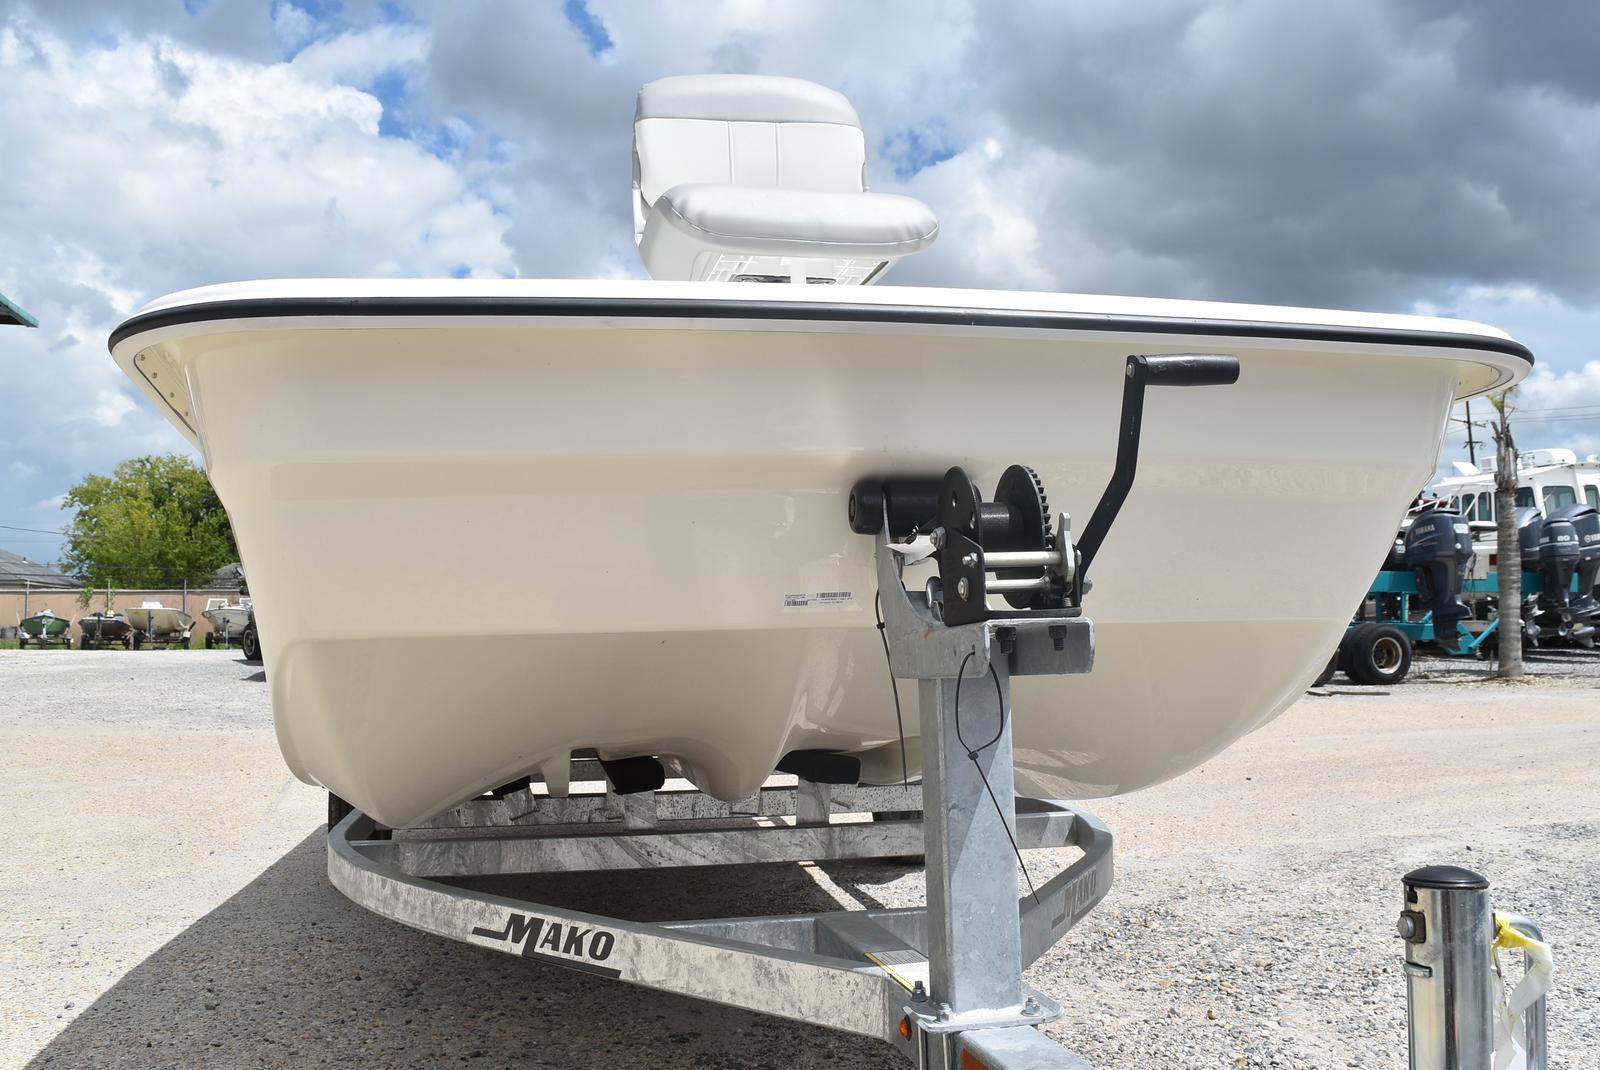 2020 Mako boat for sale, model of the boat is Pro Skiff 17, 75 ELPT & Image # 356 of 702